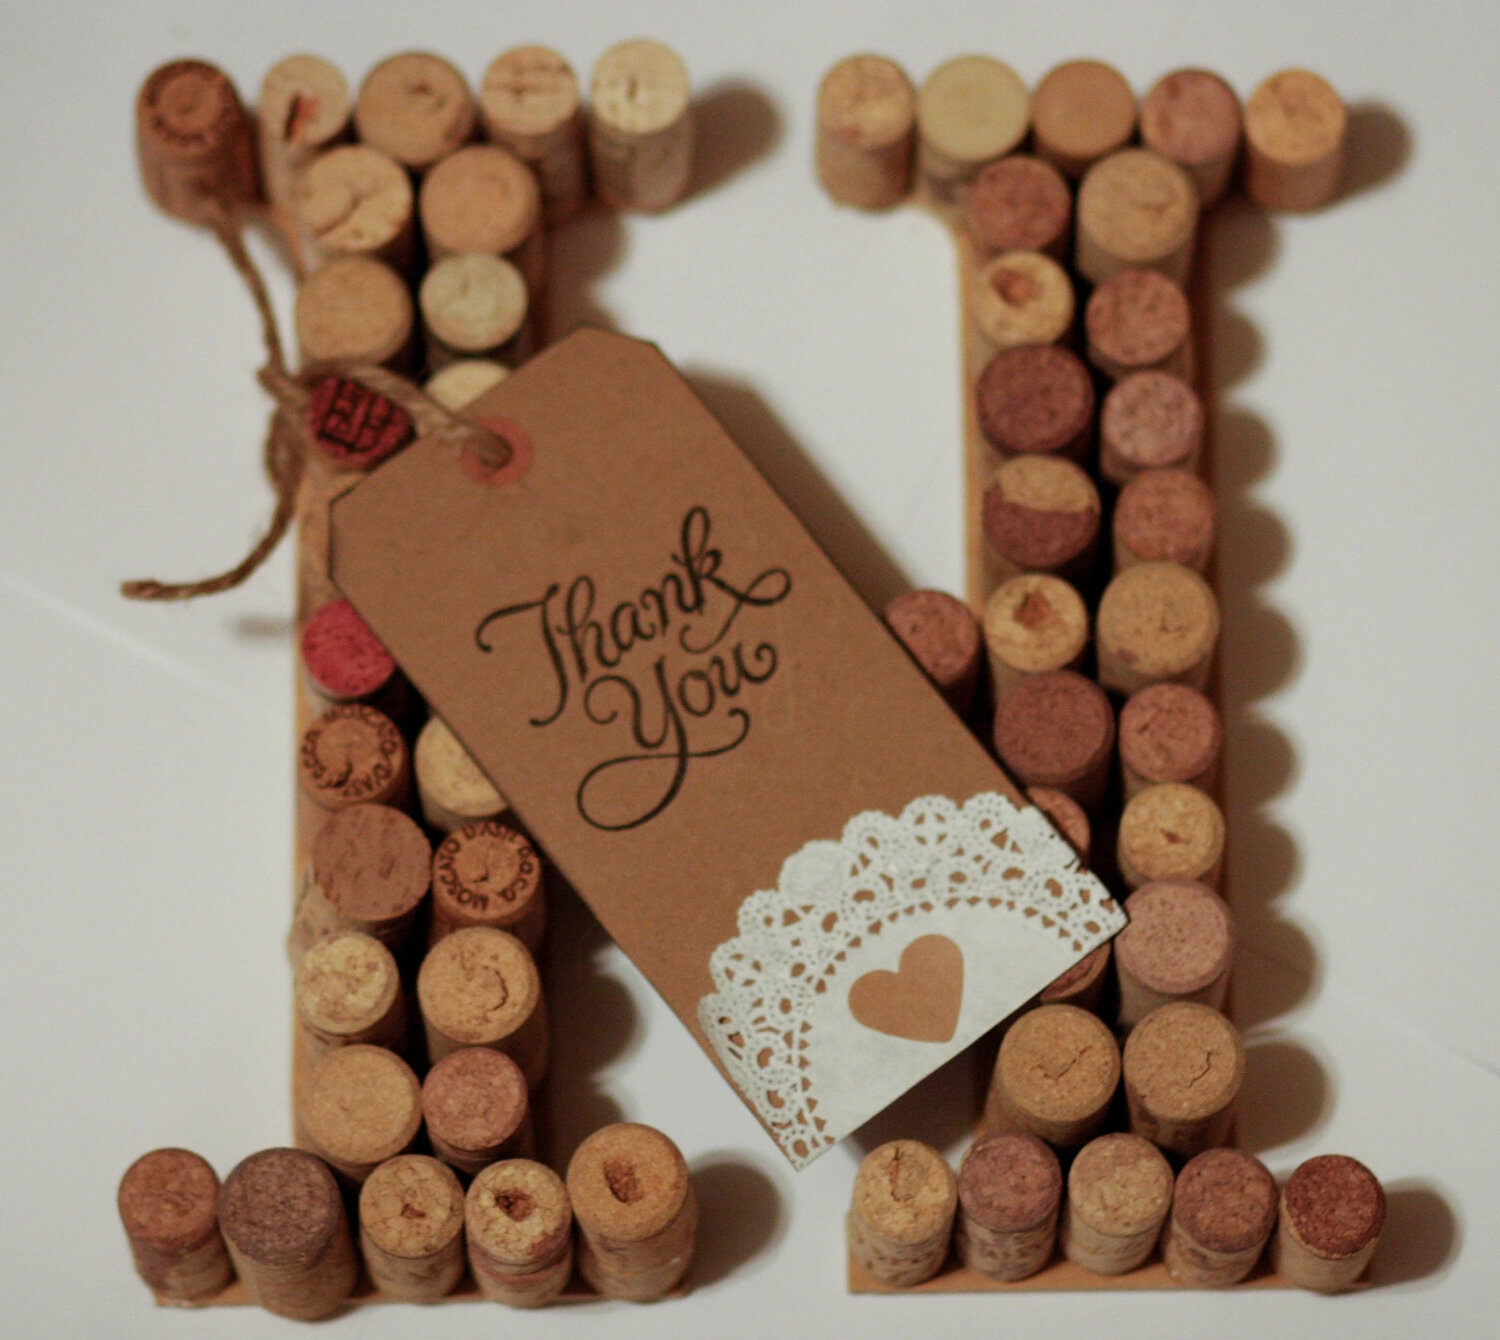 wine-cork-letters-unique-gift-for-the-wine-lover-tag-with-custom-message-included-5a7360331.jpg